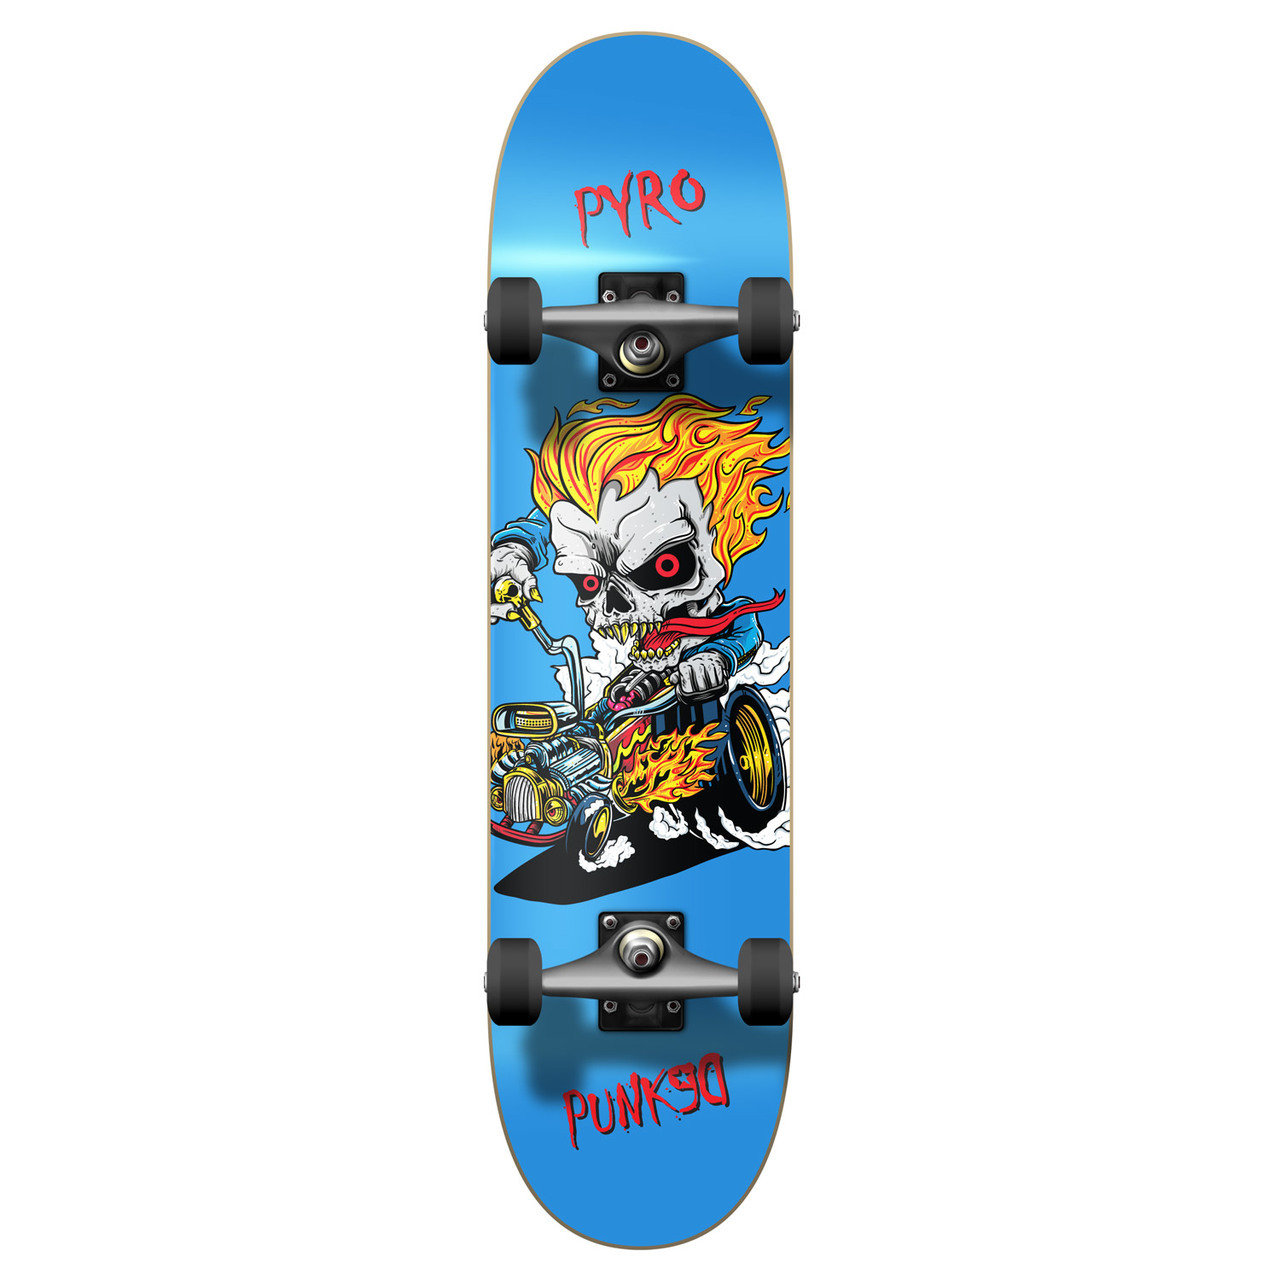 Yocaher Graphic Hot Rod Pyro Complete Skateboard